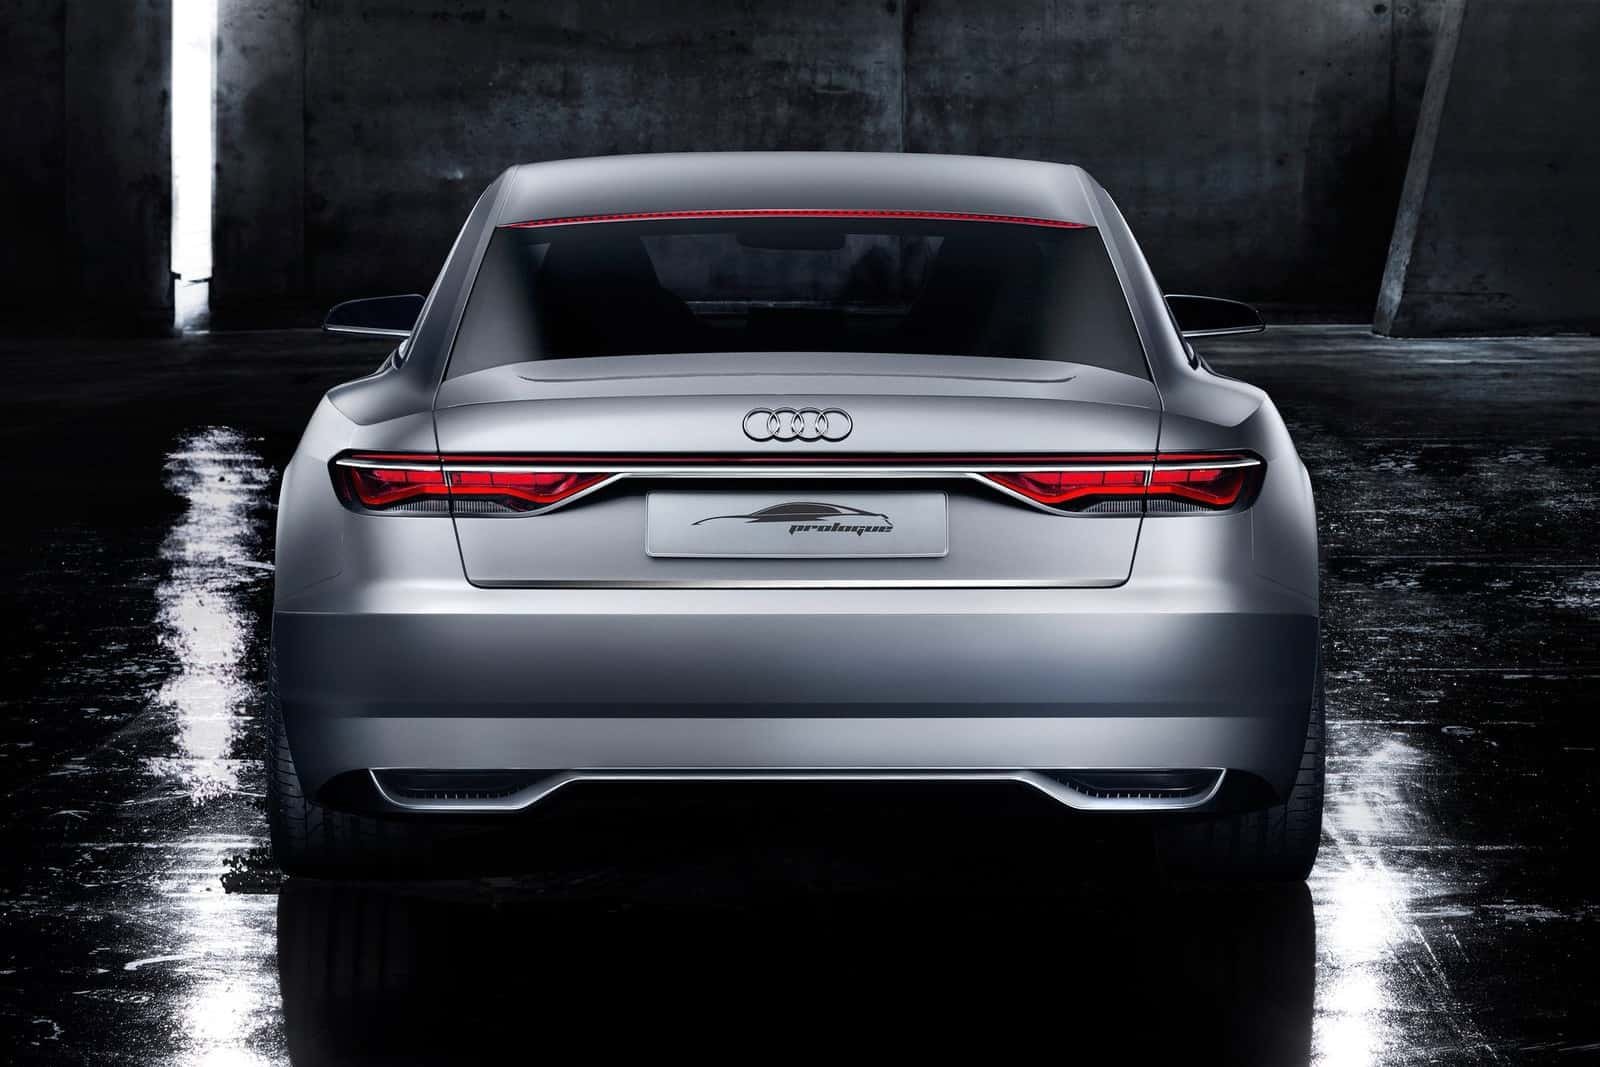 Audi-Prologue_Concept_2014_1600x1200_wallpaper_09